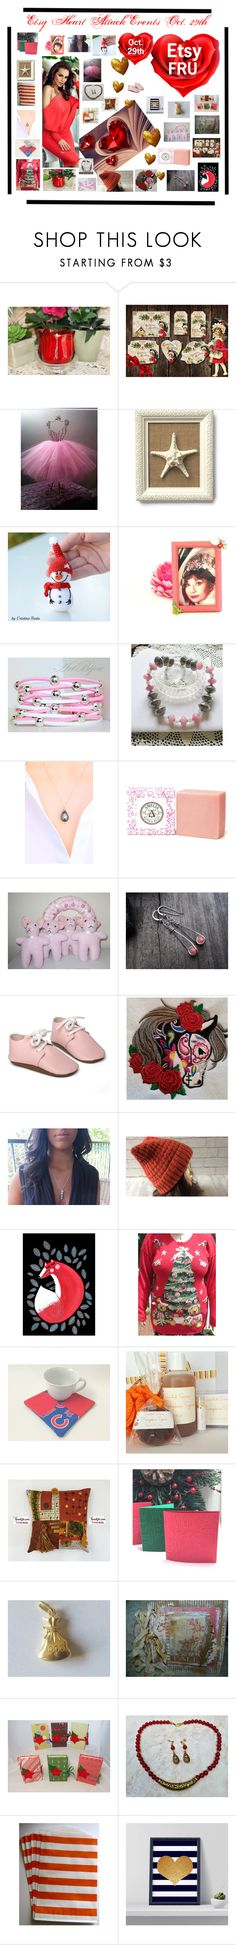 """""""Etsy Fru Heart Attack... Oct 29th"""" by zebacreations ❤ liked on Polyvore featuring Calavera, Hostess and Therapy"""